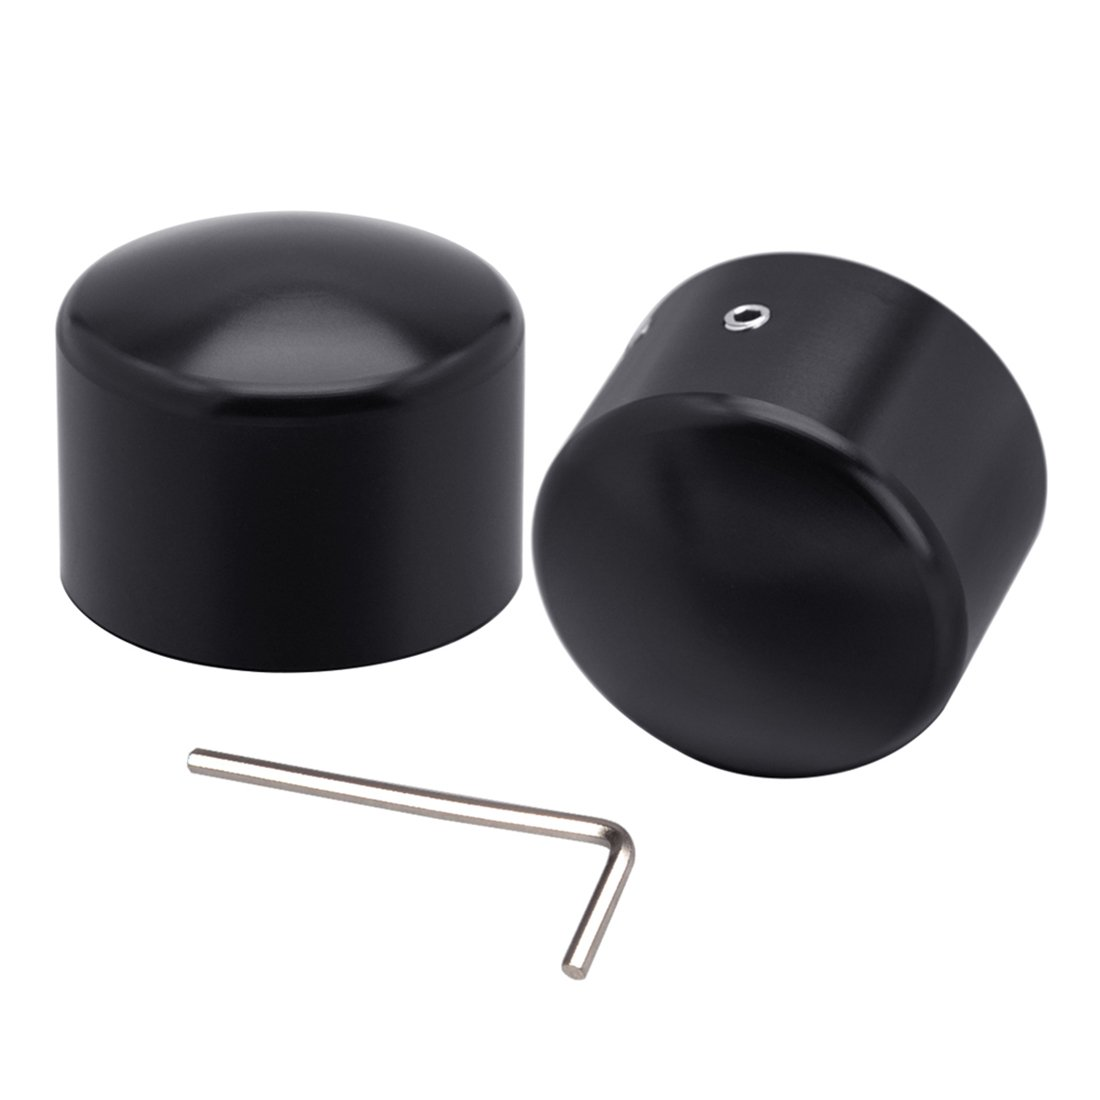 Clipsone Black Front Axle Nut Cover Cap for Harley Sportster Touring Street Electra Road Glide Doitnow